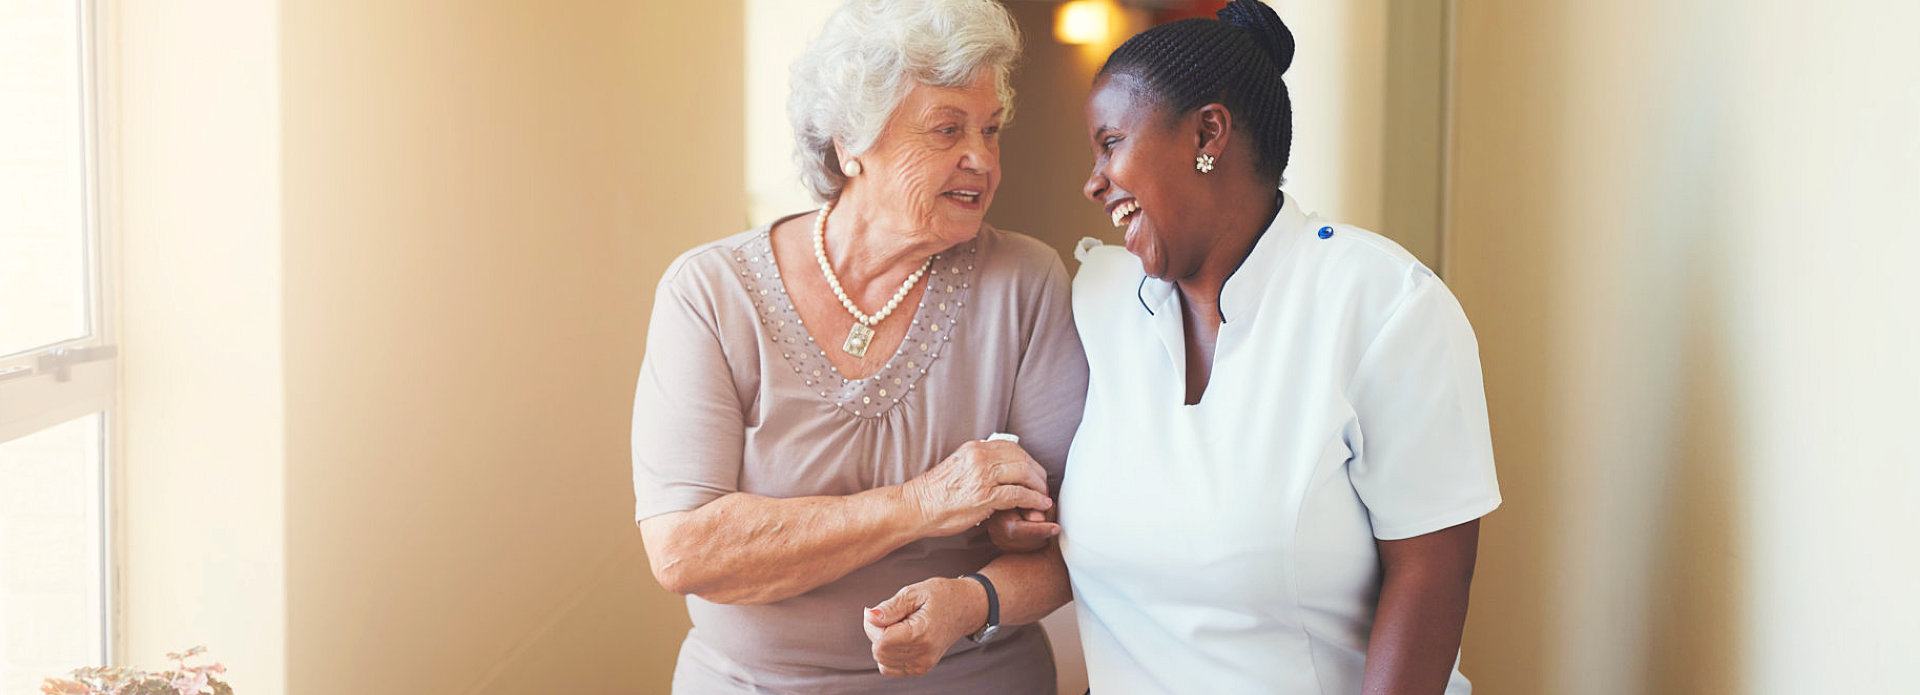 nurse and elderly smiling